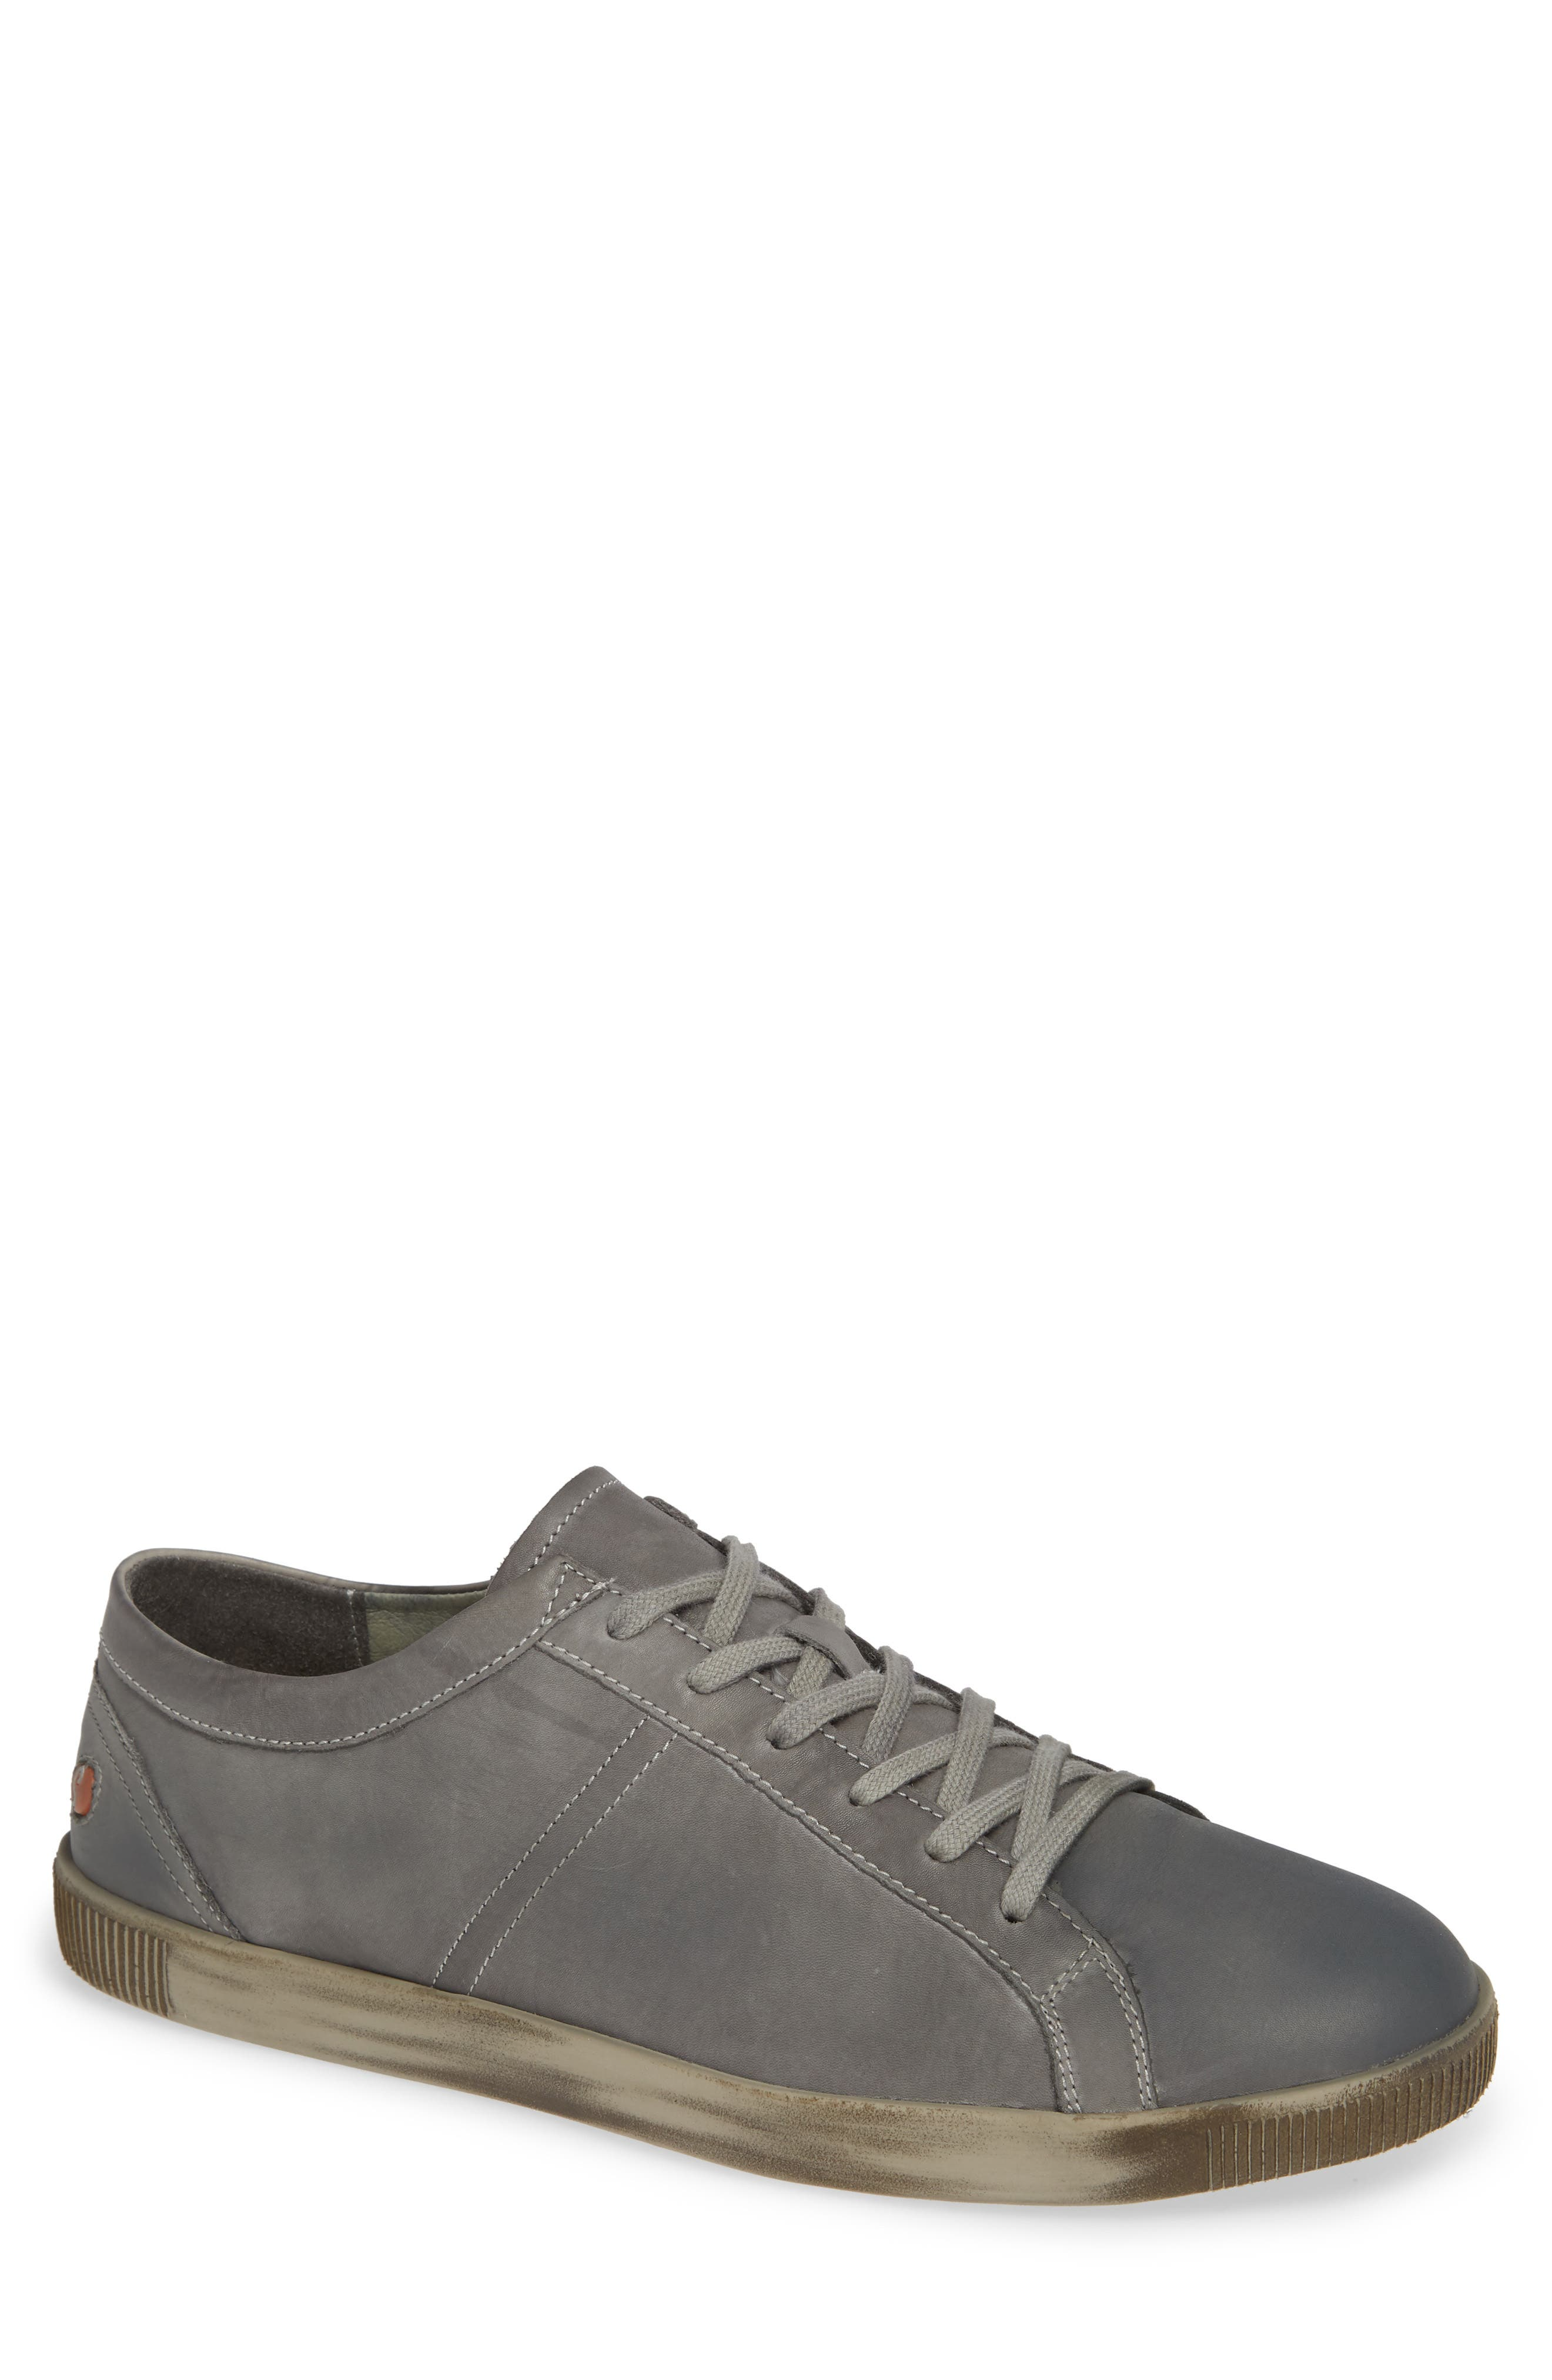 Tom Sneaker,                             Main thumbnail 1, color,                             MILITARY WASHED LEATHER